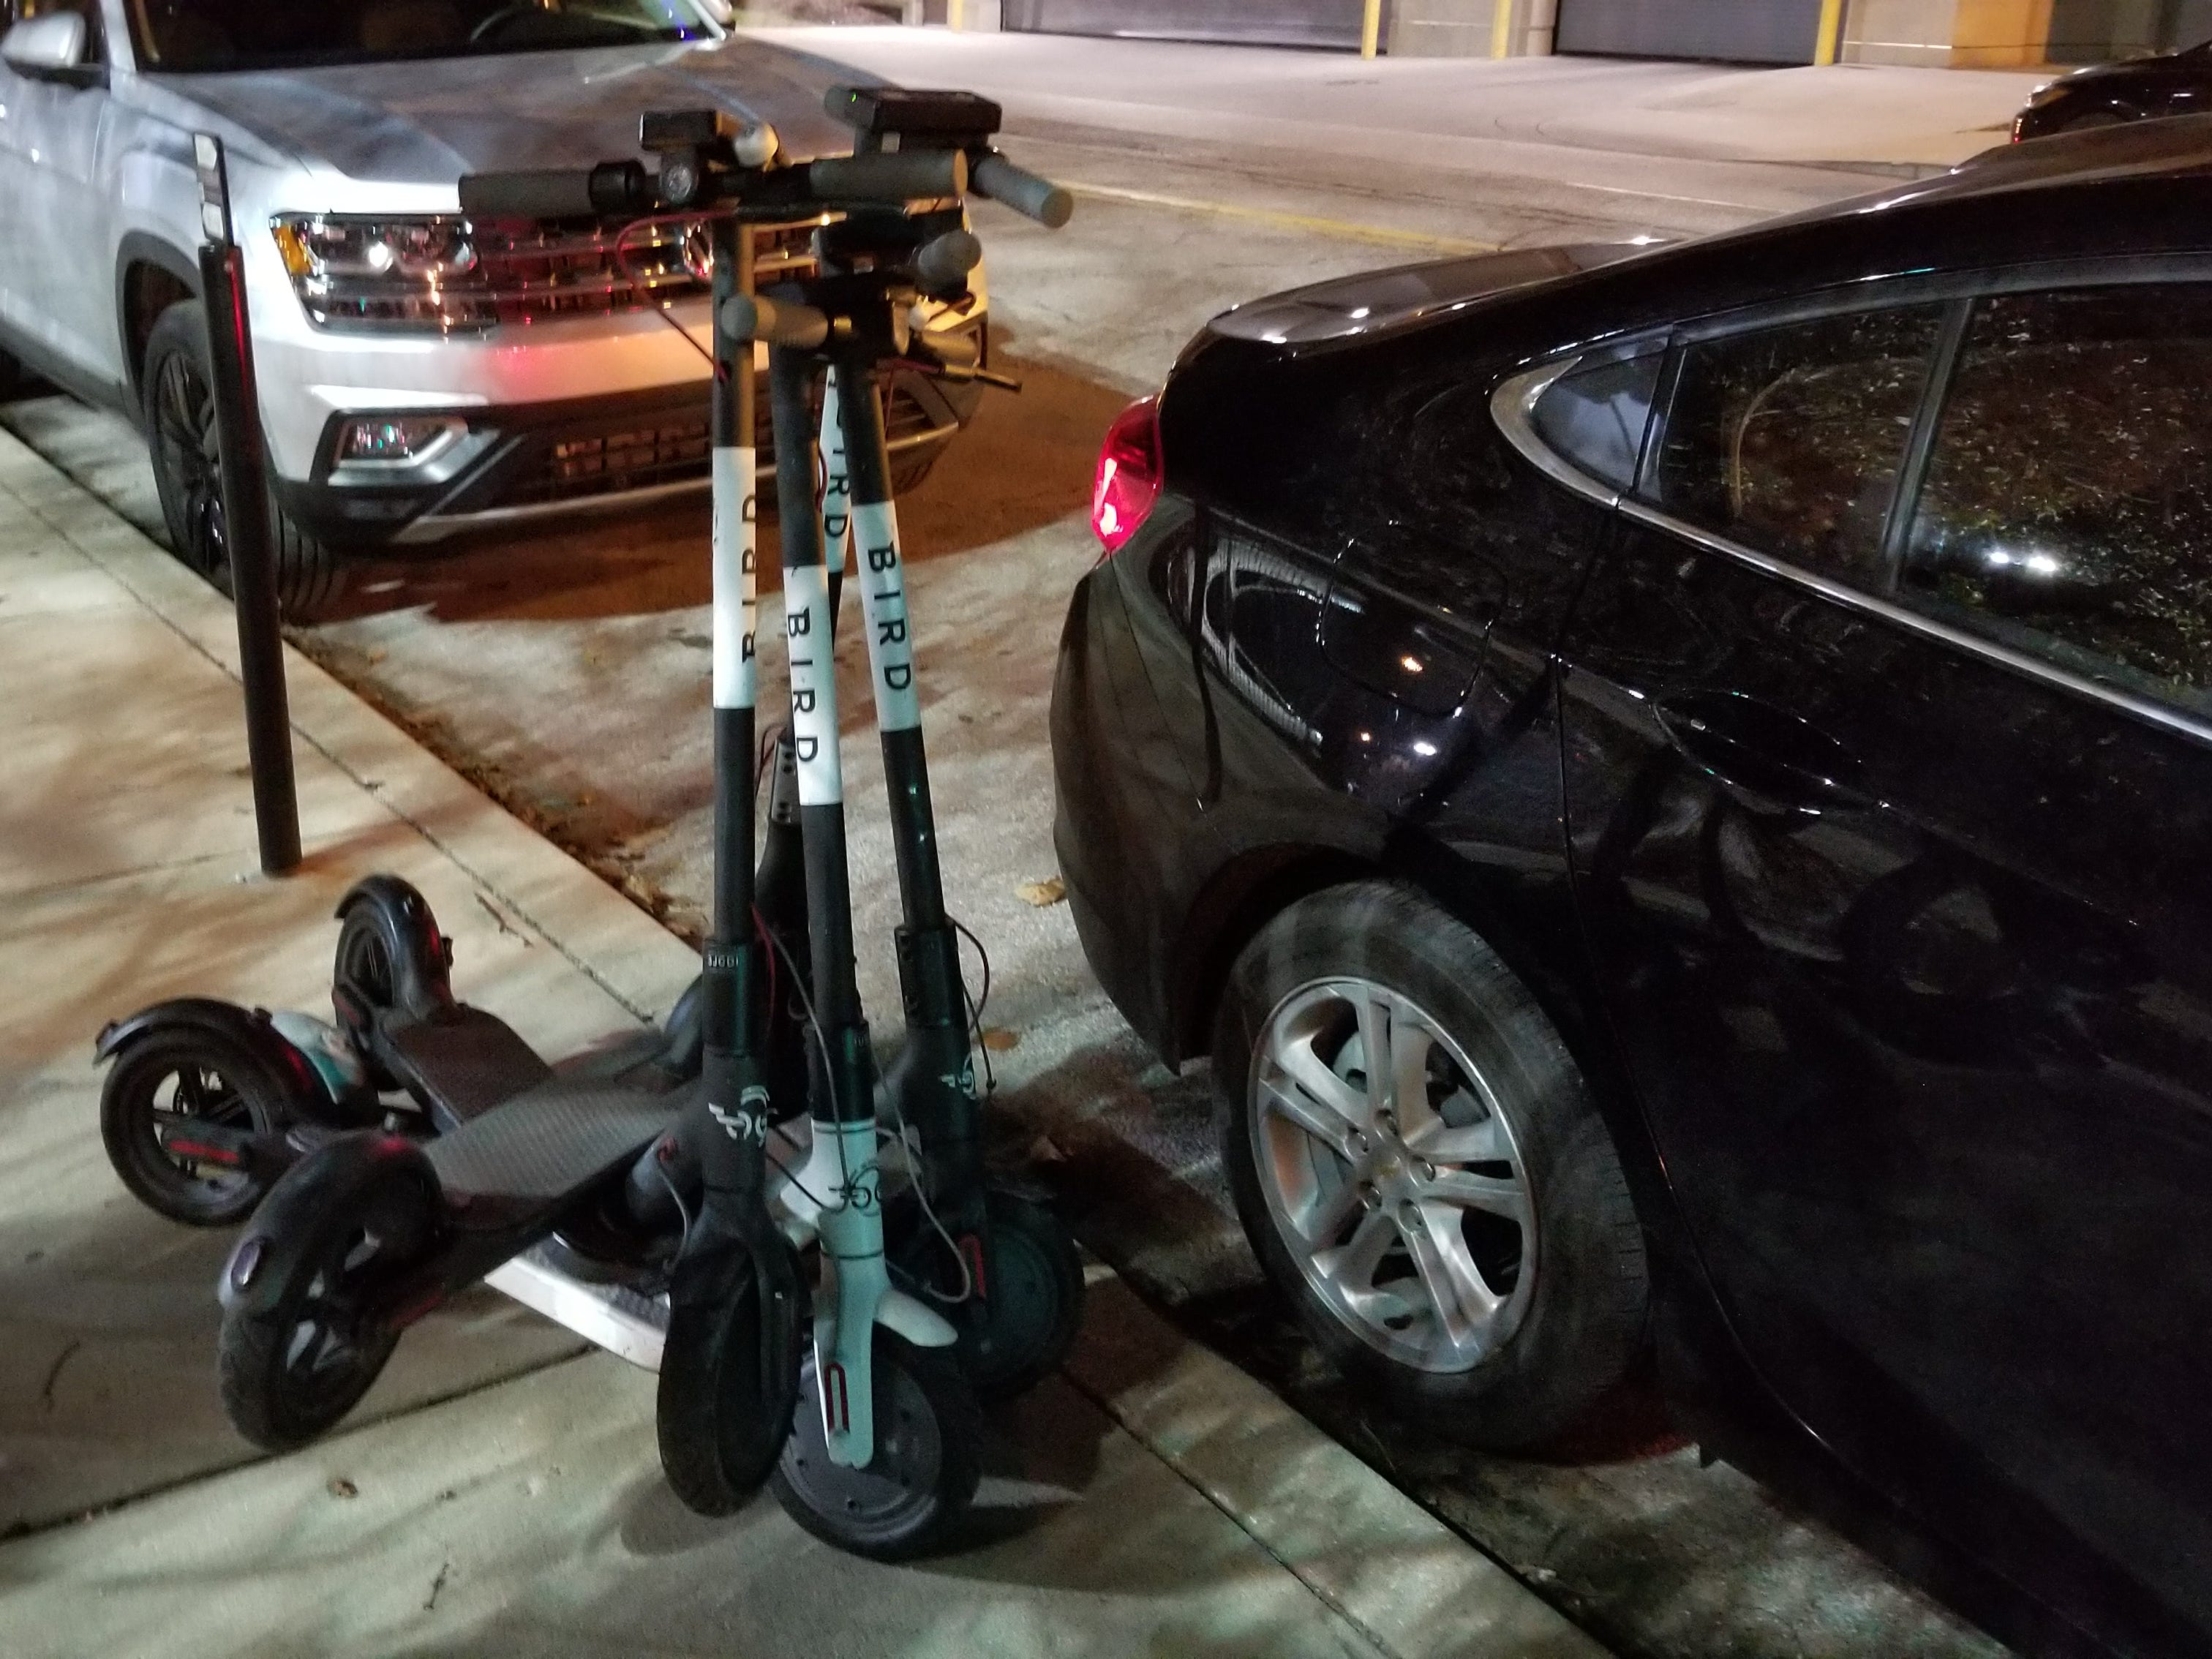 Bird scooters are stacked up as Simone Thomas collects them on Nov. 21, 2018, in Indianapolis.